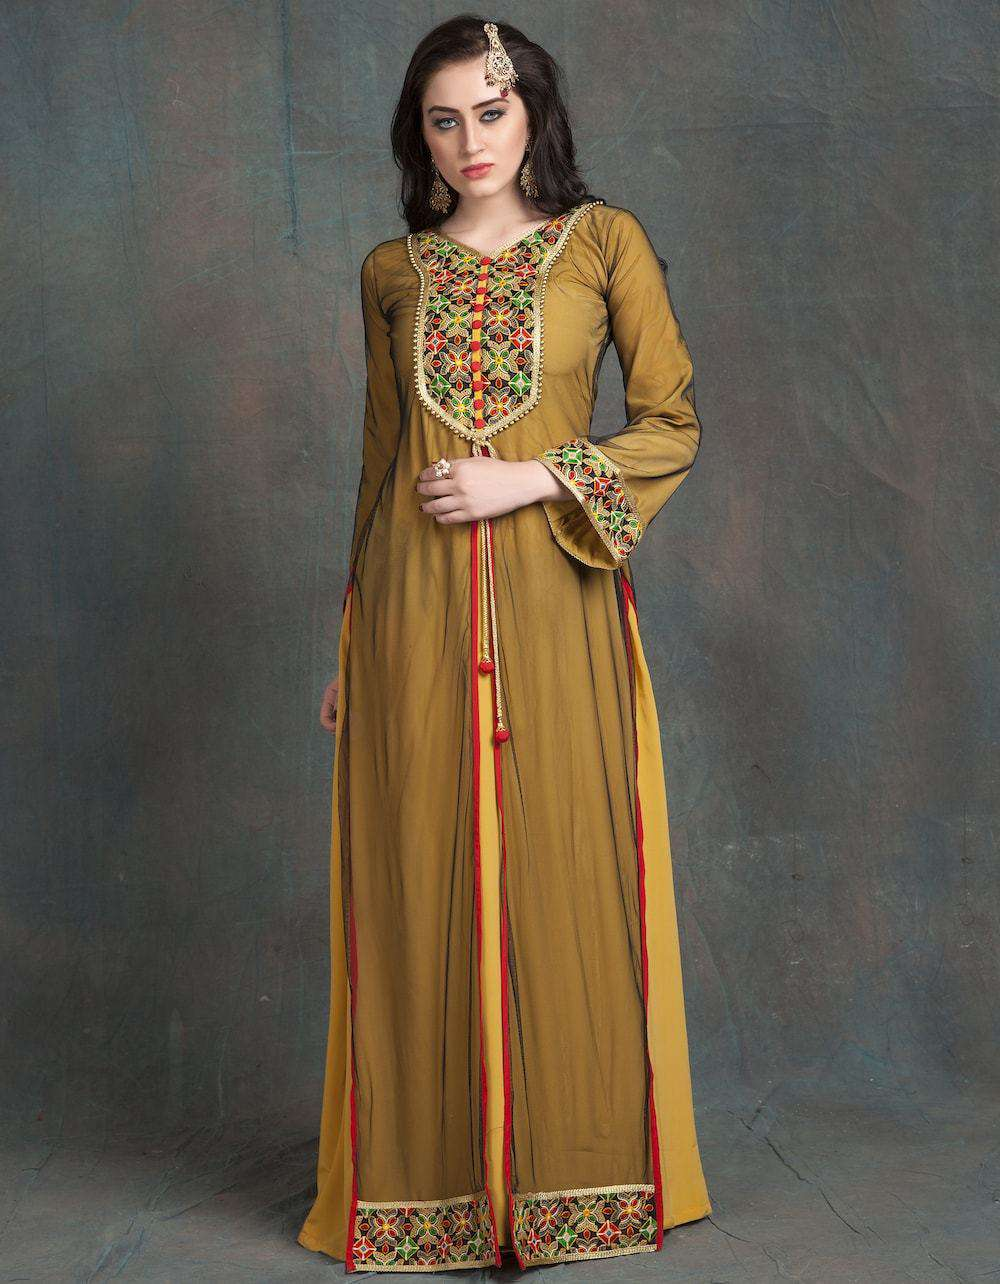 Golden & Yellow Modern Style Embroidery Full Sleeve Formal Caftan MYPF1204